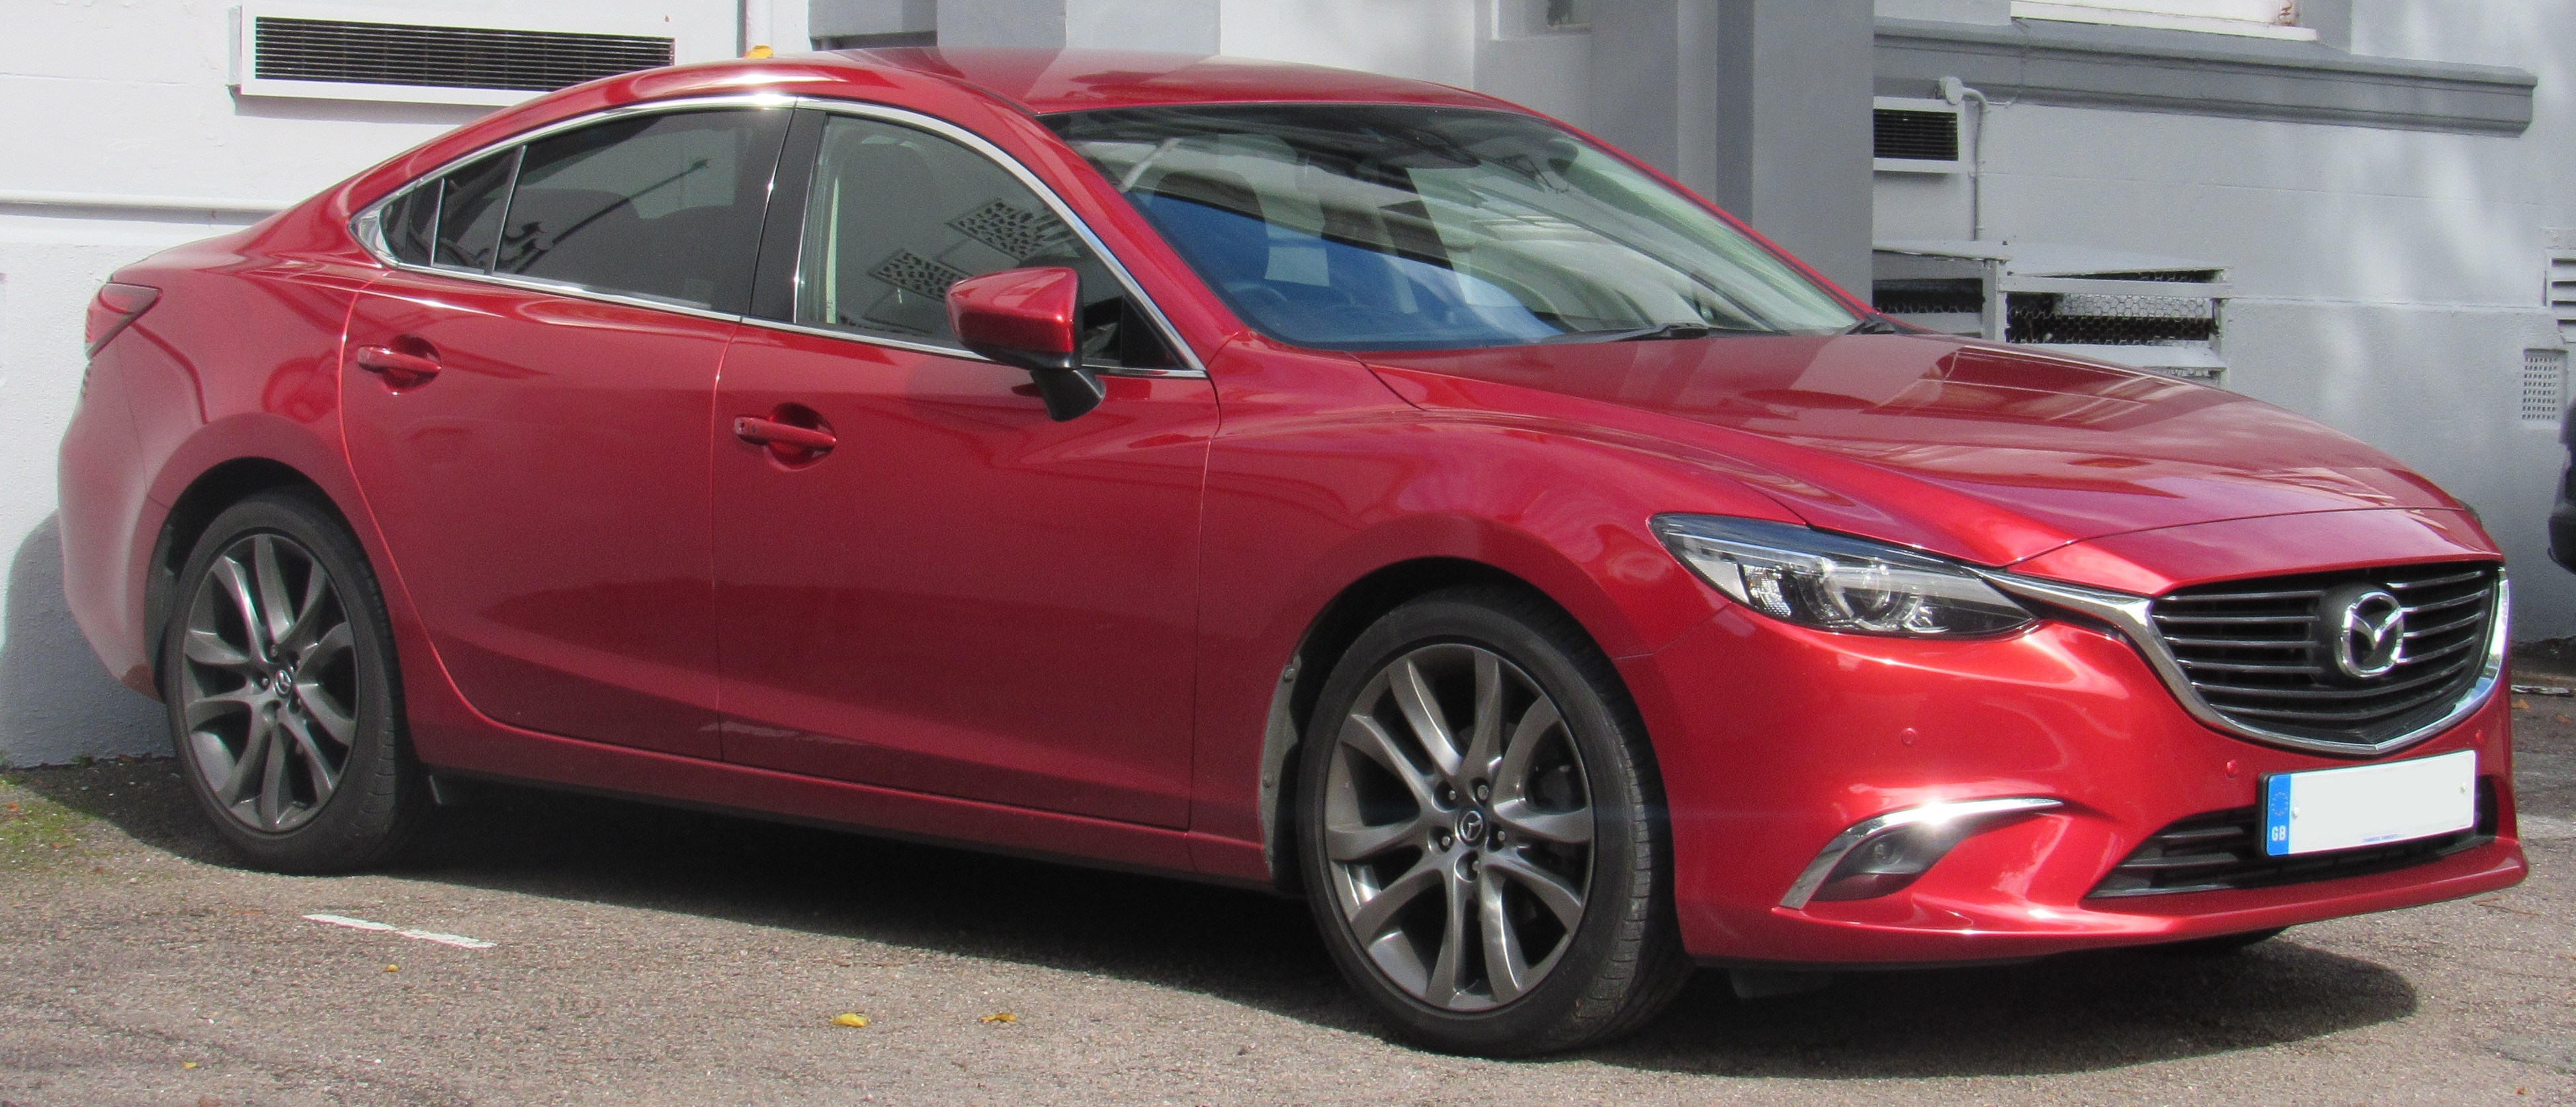 Build A Mazda >> File:2015 Mazda6 Sport 2.2.jpg - Wikimedia Commons